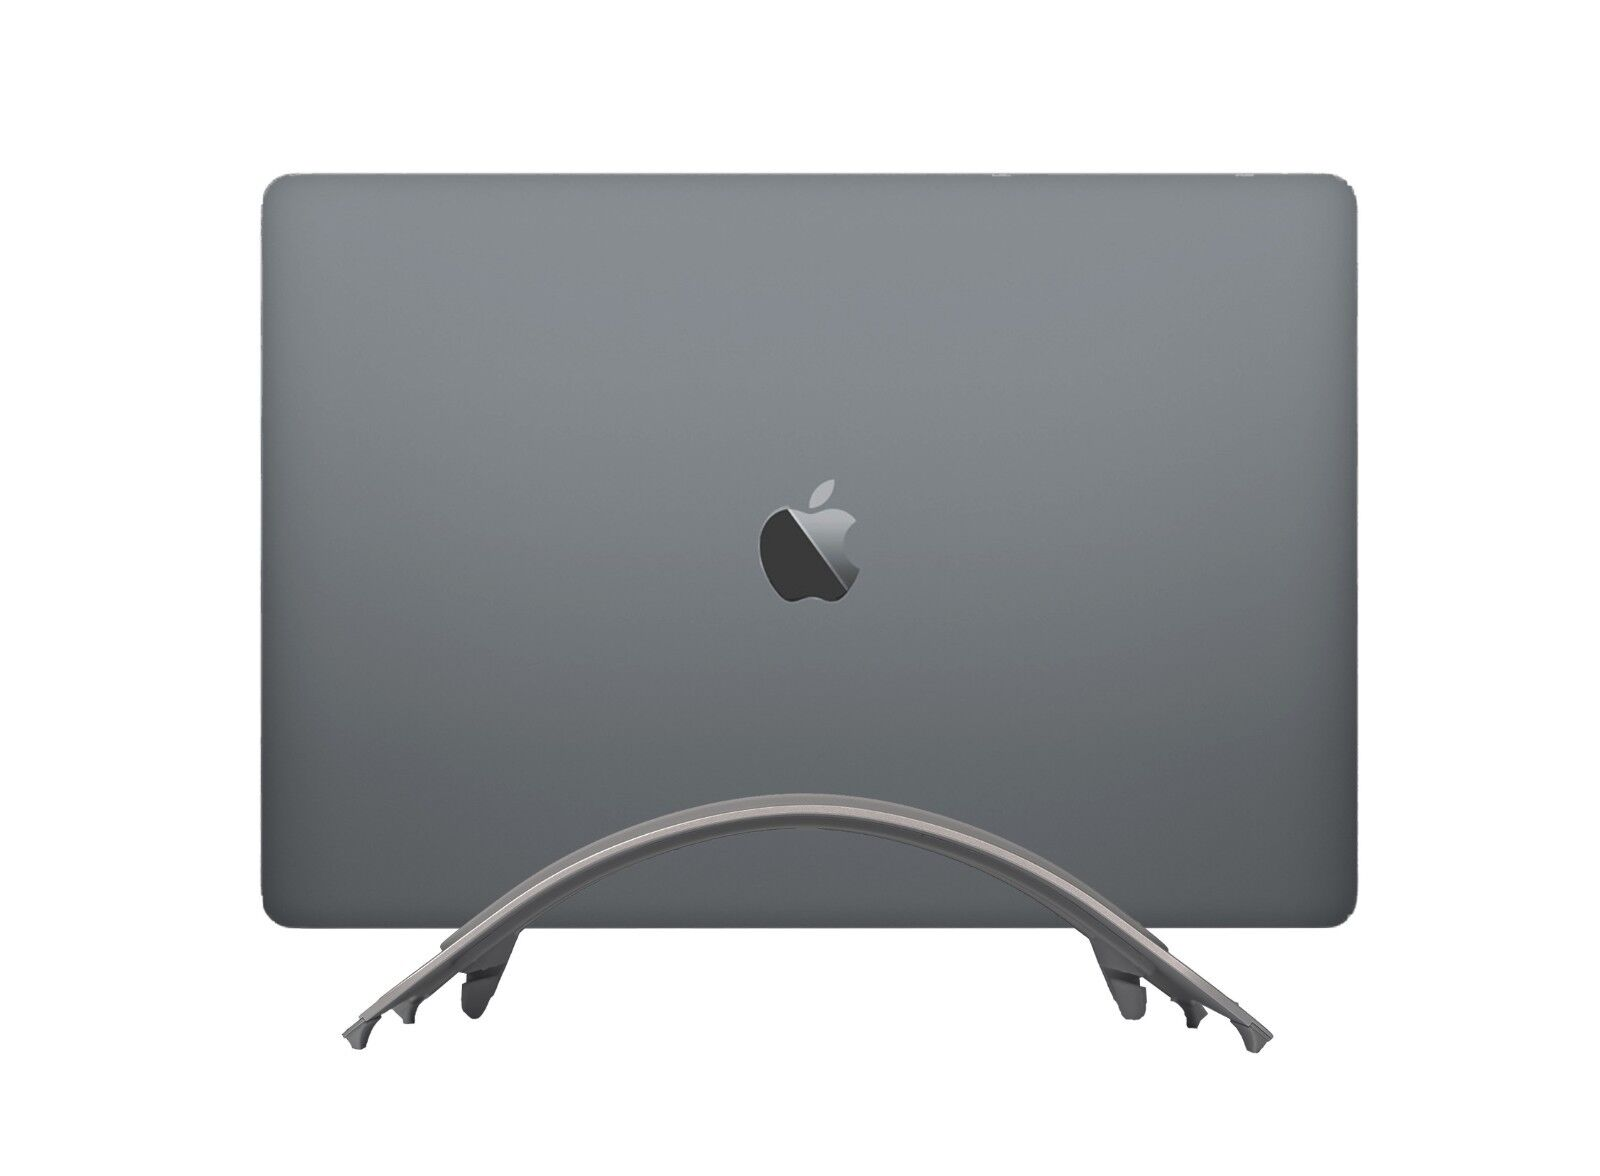 Arctic Series Arc Laptop Stand | For Apple MacBook Pro Space